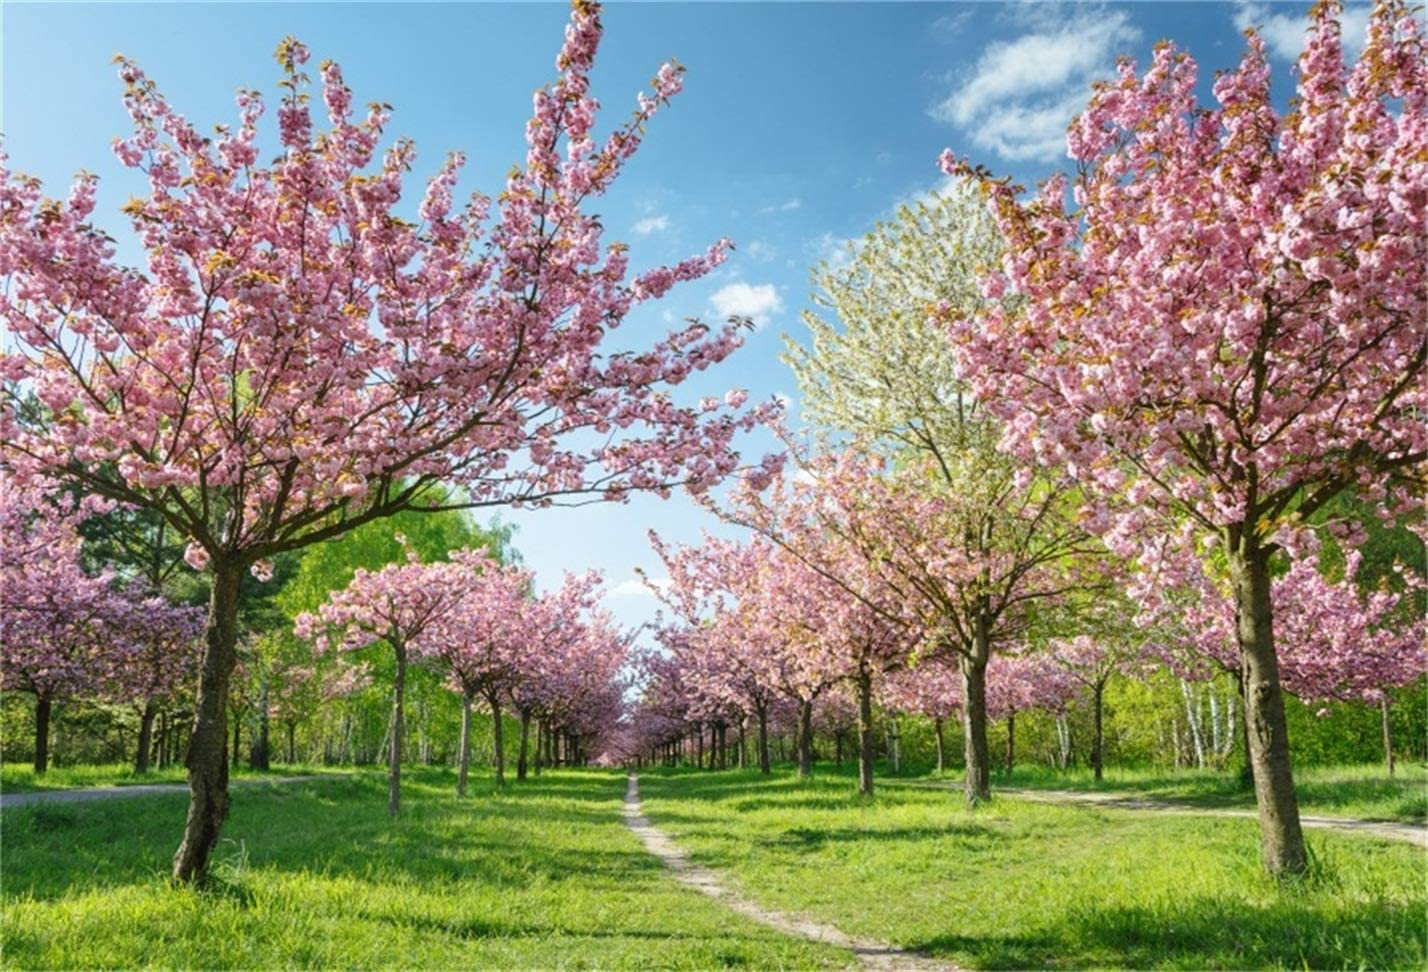 Dreamy Blossom Orchard Backdrop 9x6ft Photography Background Blue Sky Green Grass Rural Scenery Countryside Vacation Children Adult Portraits Shoot